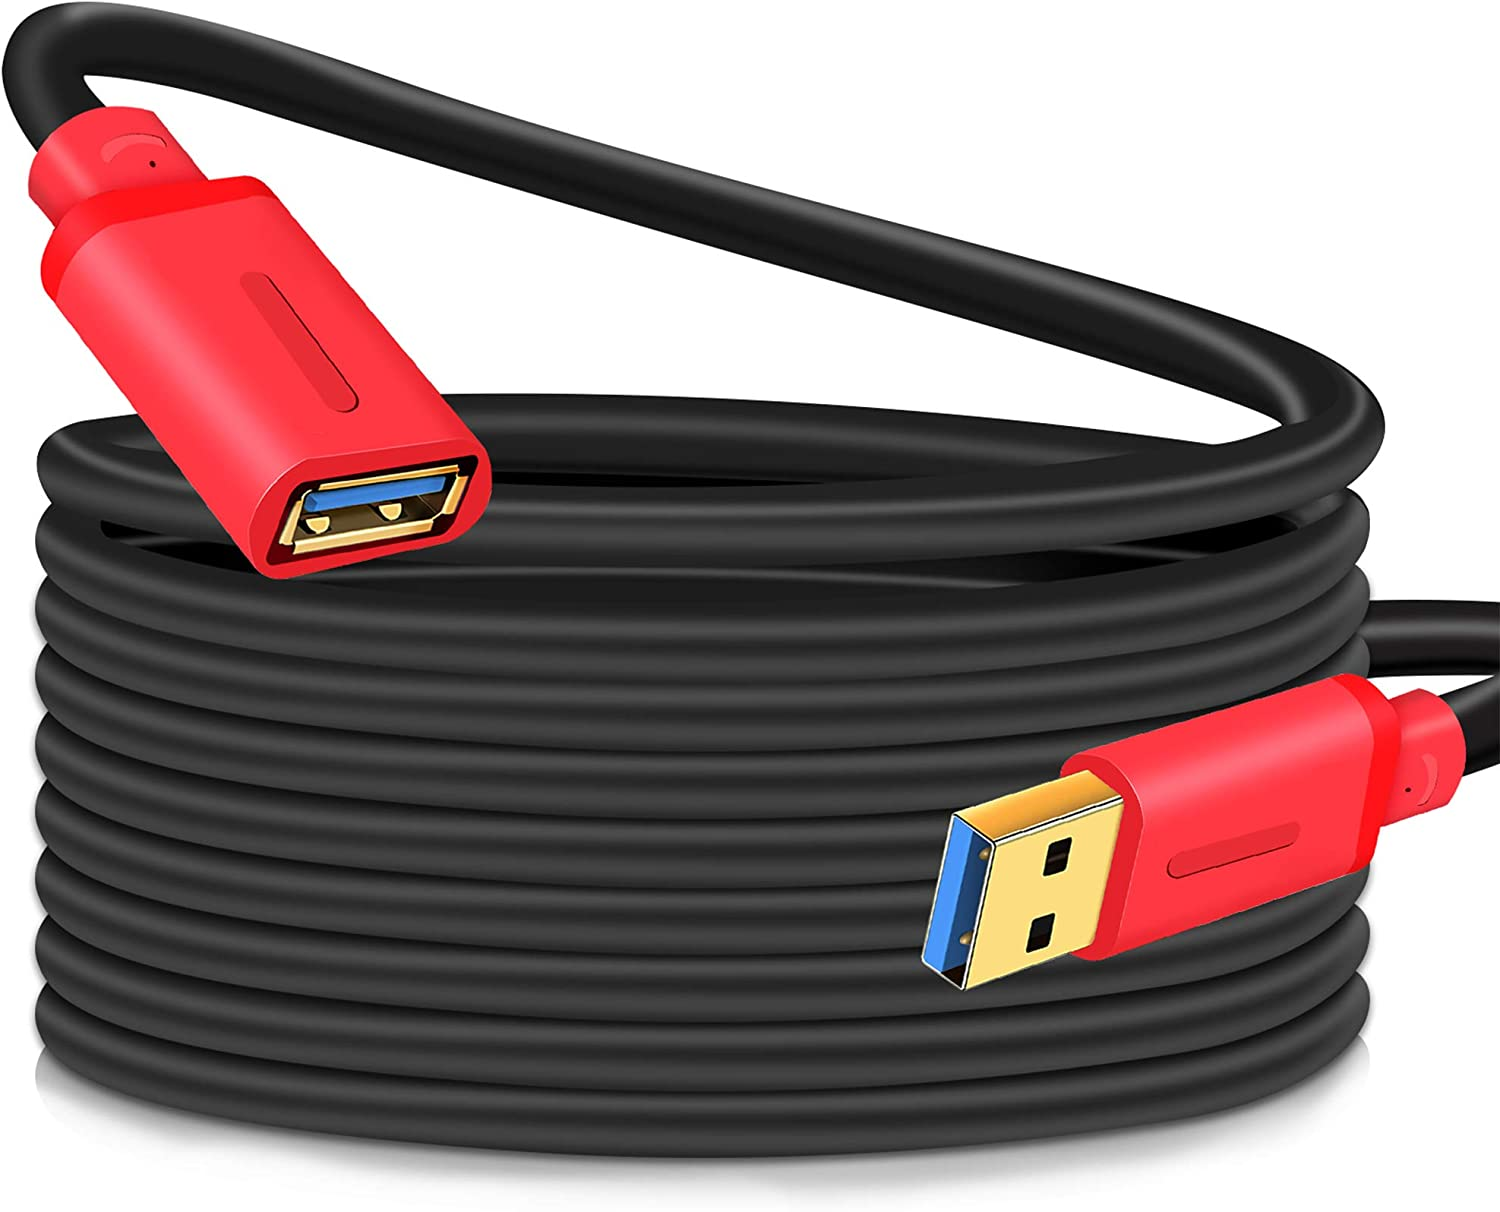 USB 3.0 Extension Cable 15Ft,USB 3.0 Extension Cable - A-Male to A-Female for USB Flash Drive, Card Reader, Hard Drive, Keyboard,Mouse,Playstation, Xbox, Printer, Camera (15Ft, Red)